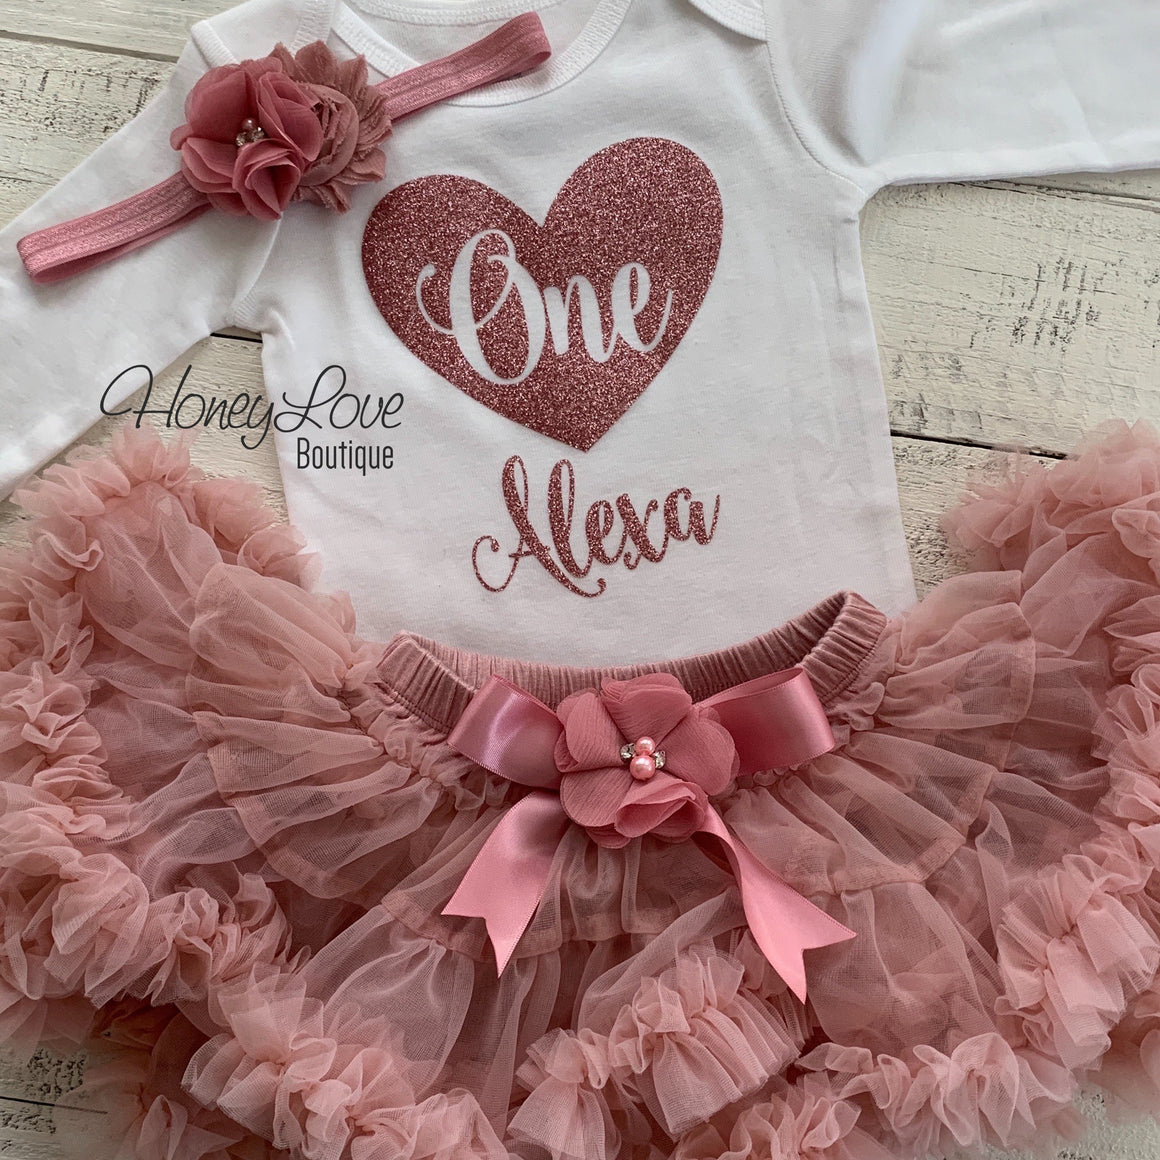 Personalized One with heart - Birthday Outfit - Vintage Pink and Rose Gold Glitter - HoneyLoveBoutique